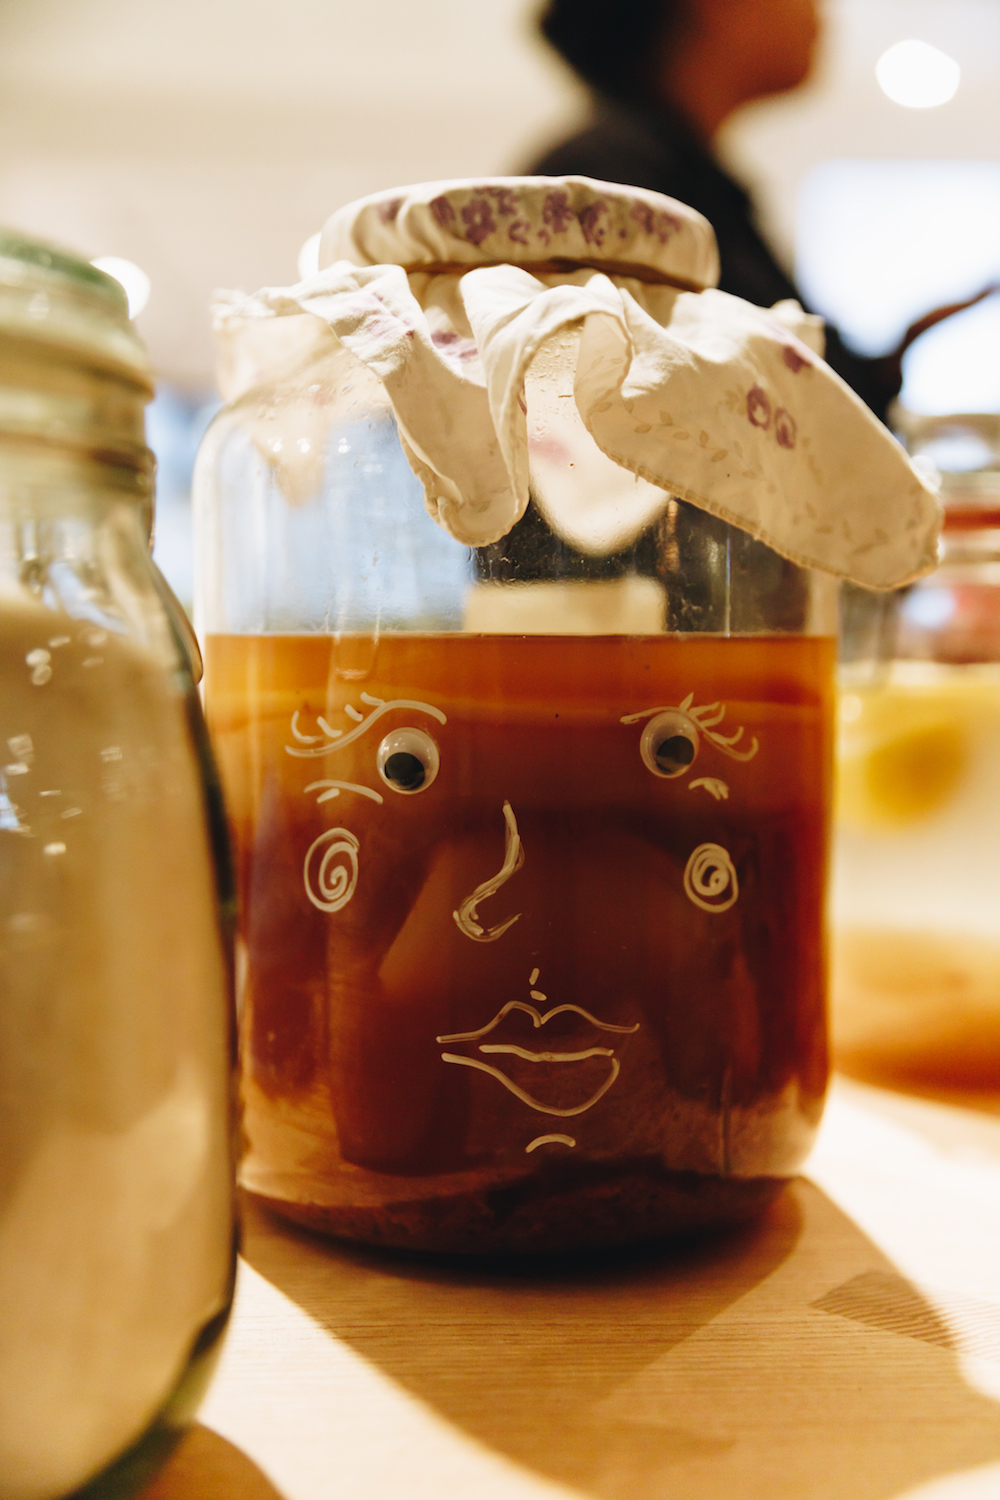 kombucha in glas vat with illustrated face